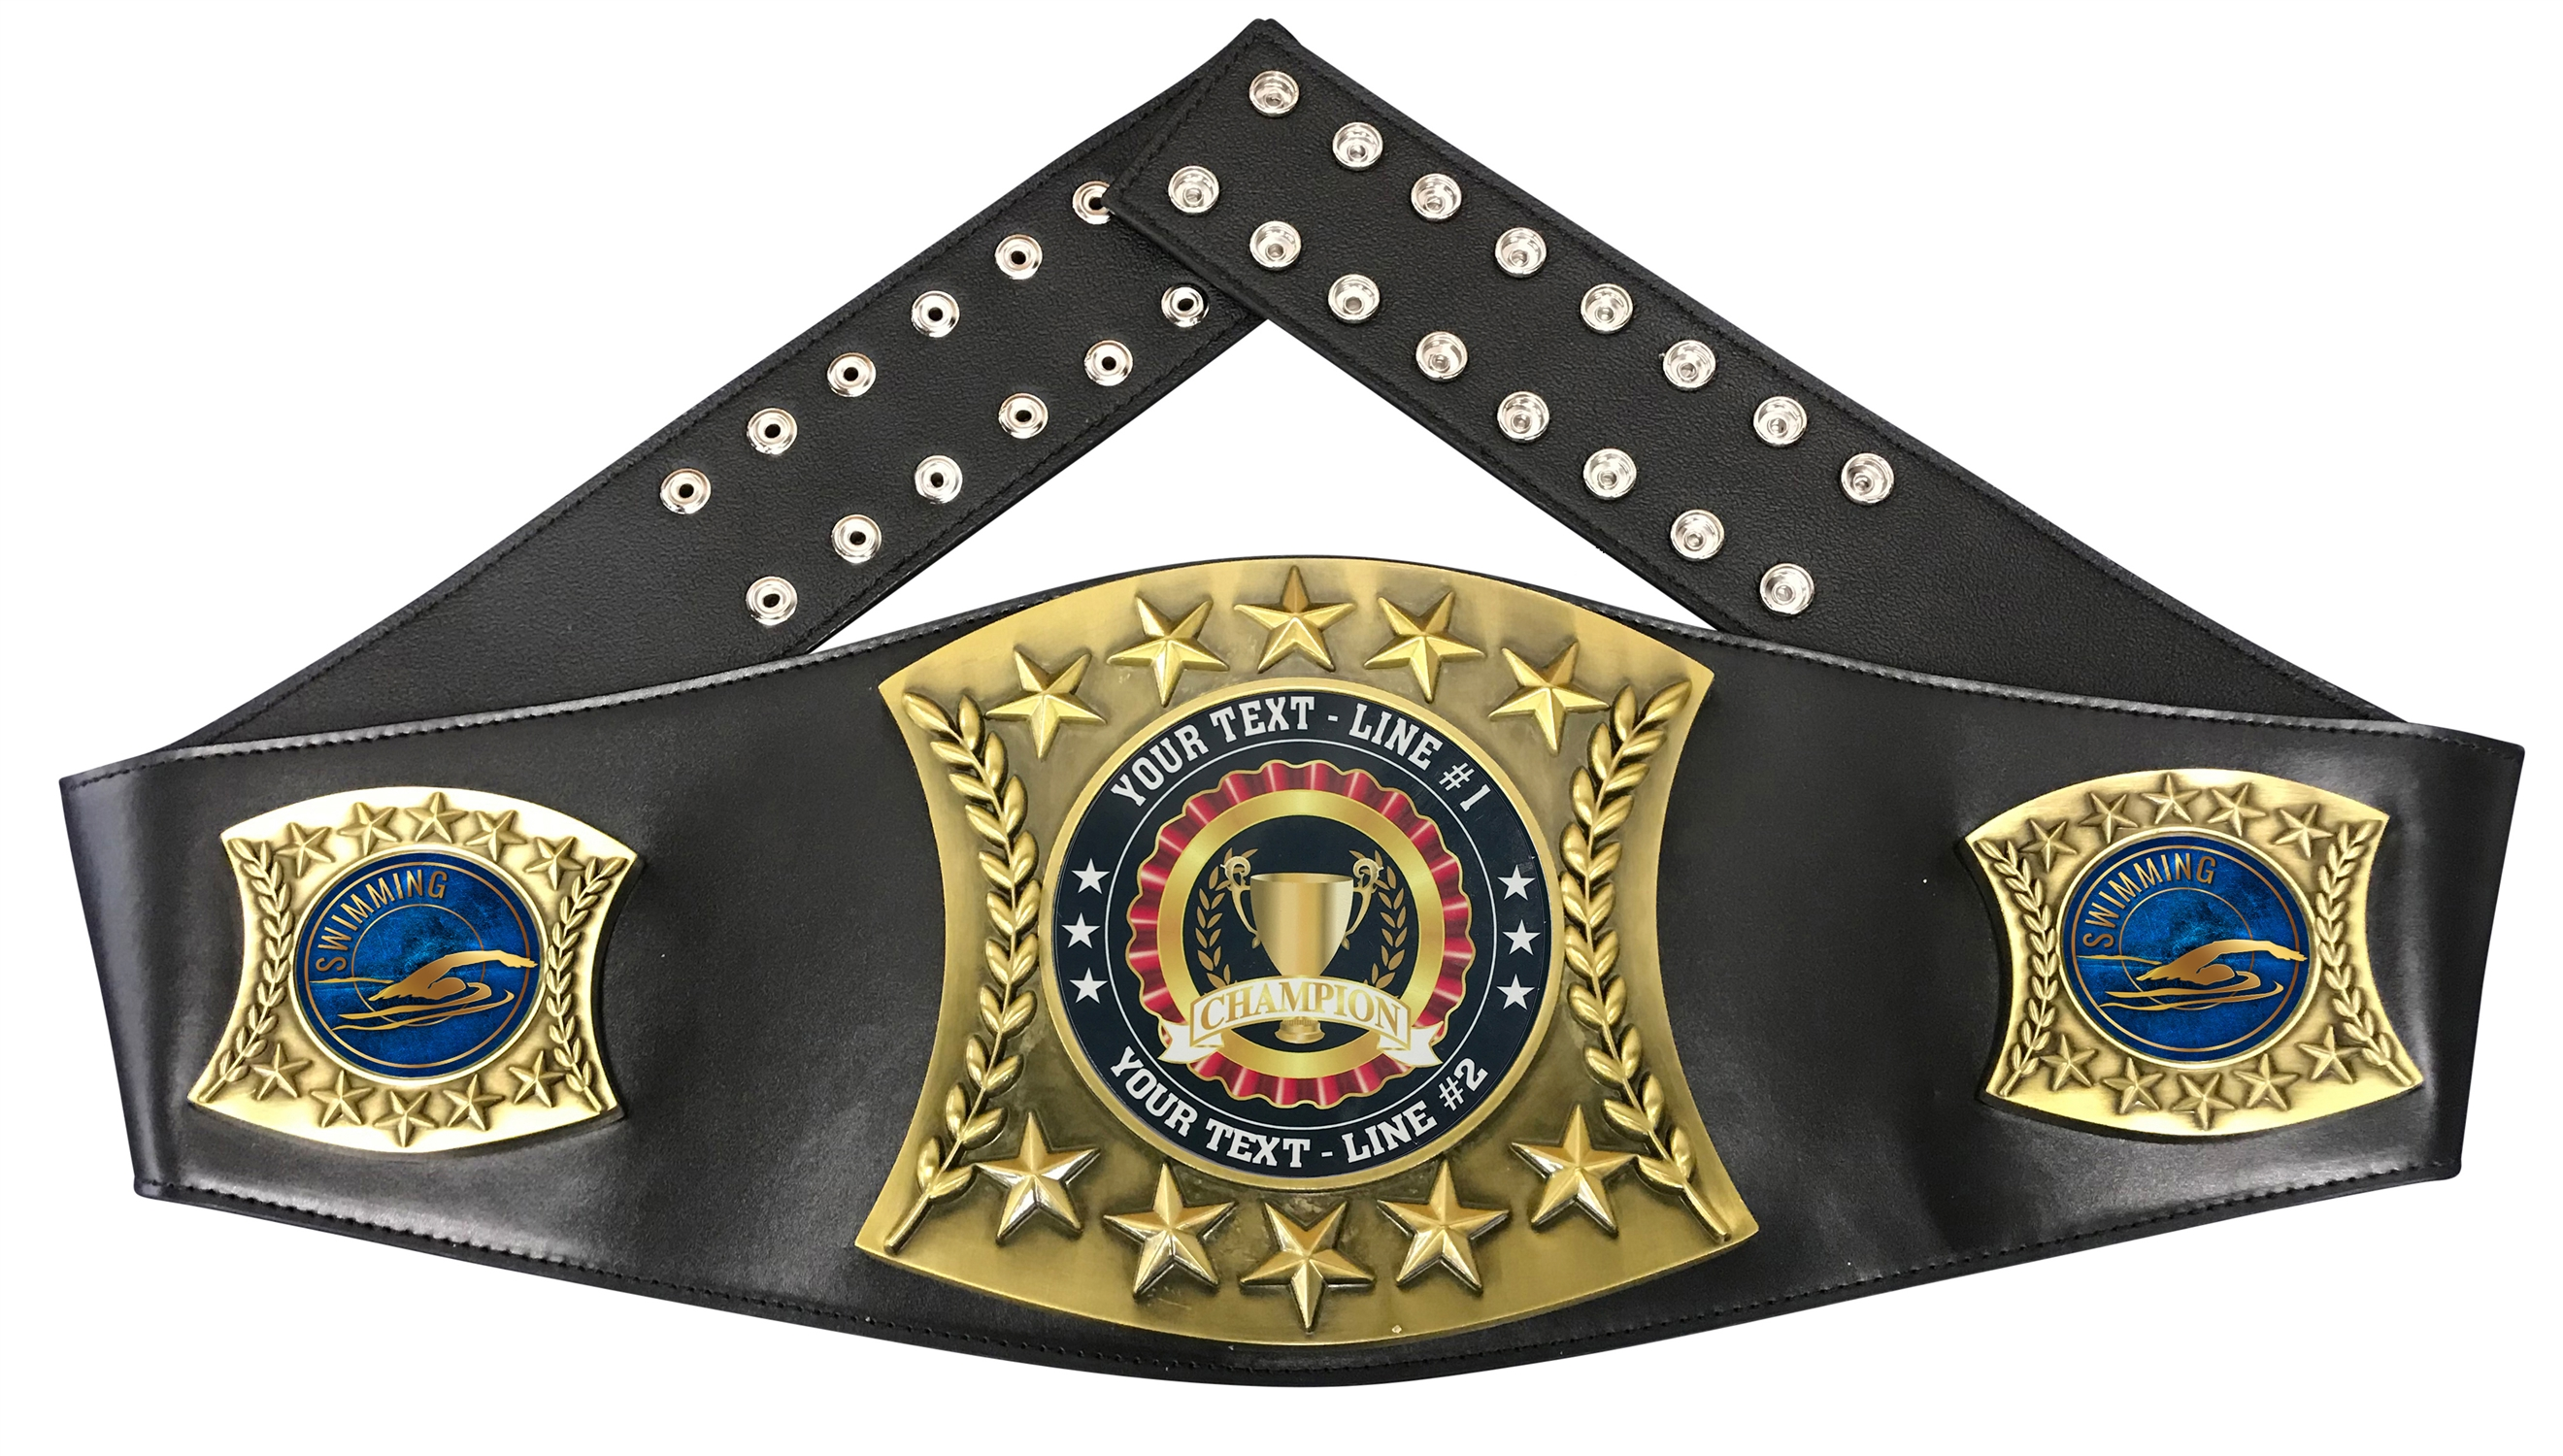 Swimming Personalized Championship Leather Belt